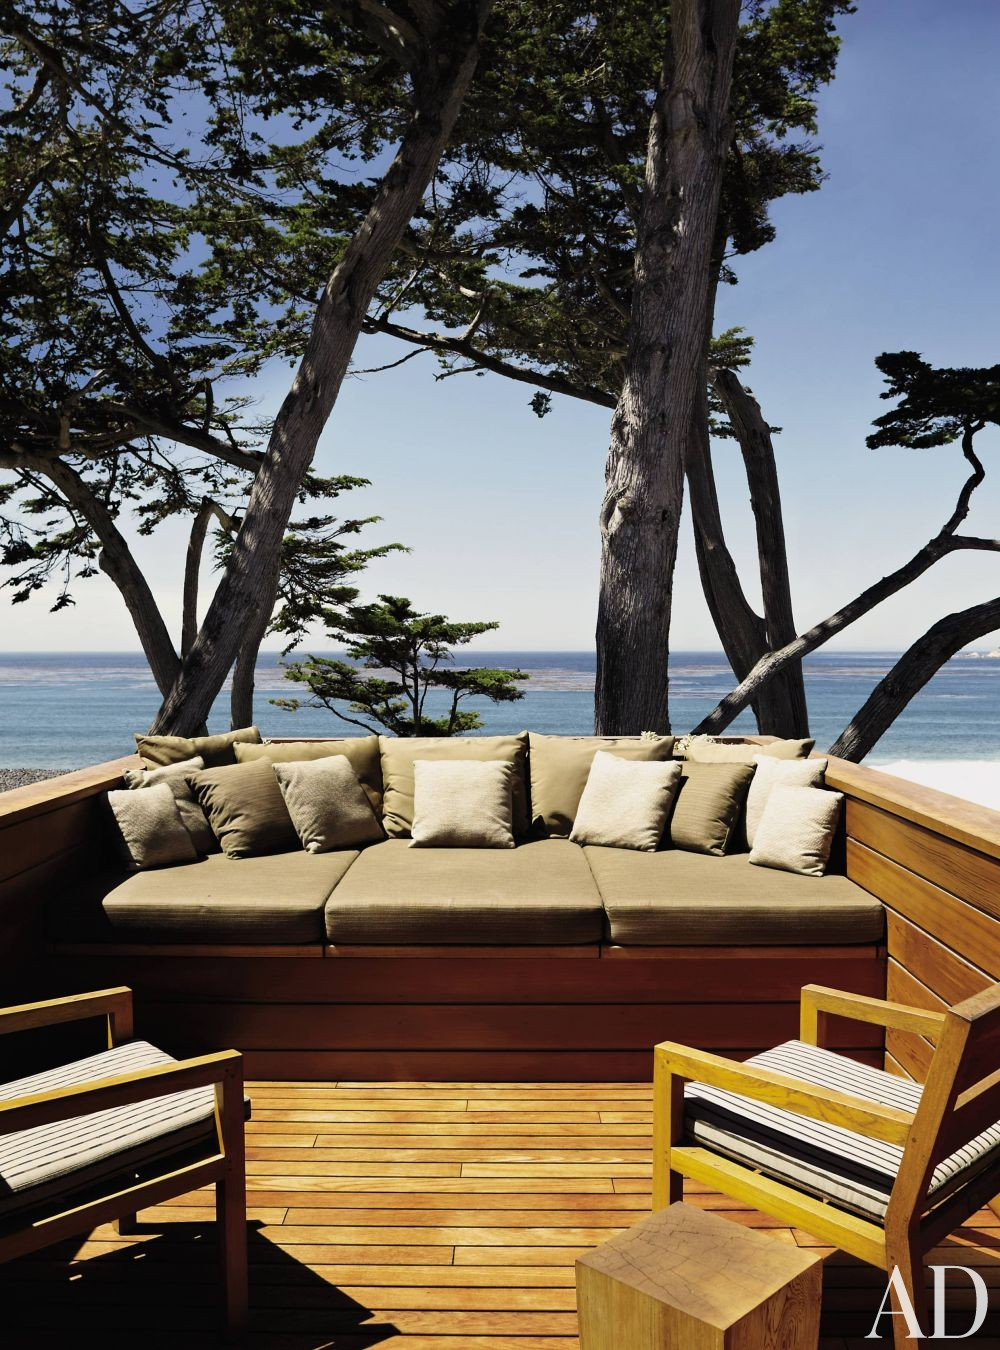 Modern Outdoor Space and Dirk Denison in Carmel-by-the-Sea, CA